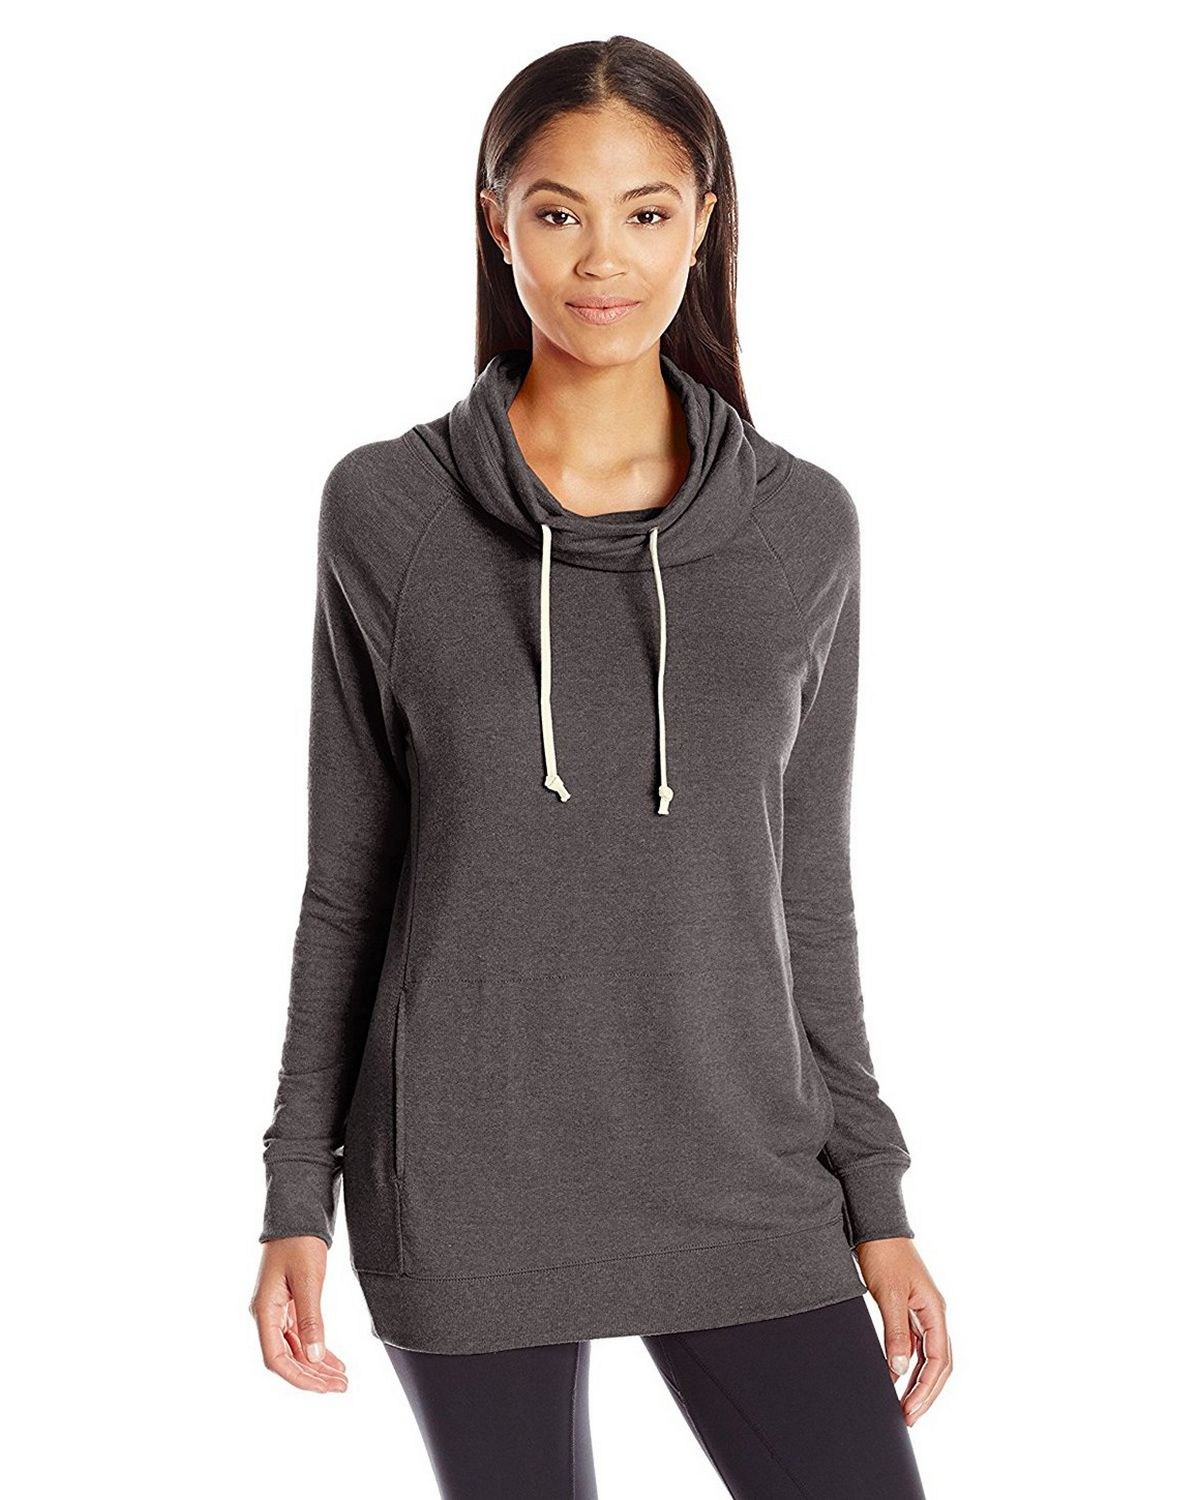 Champion Women's French Terry Funnel Neck Top, Granite Heather, M W0942